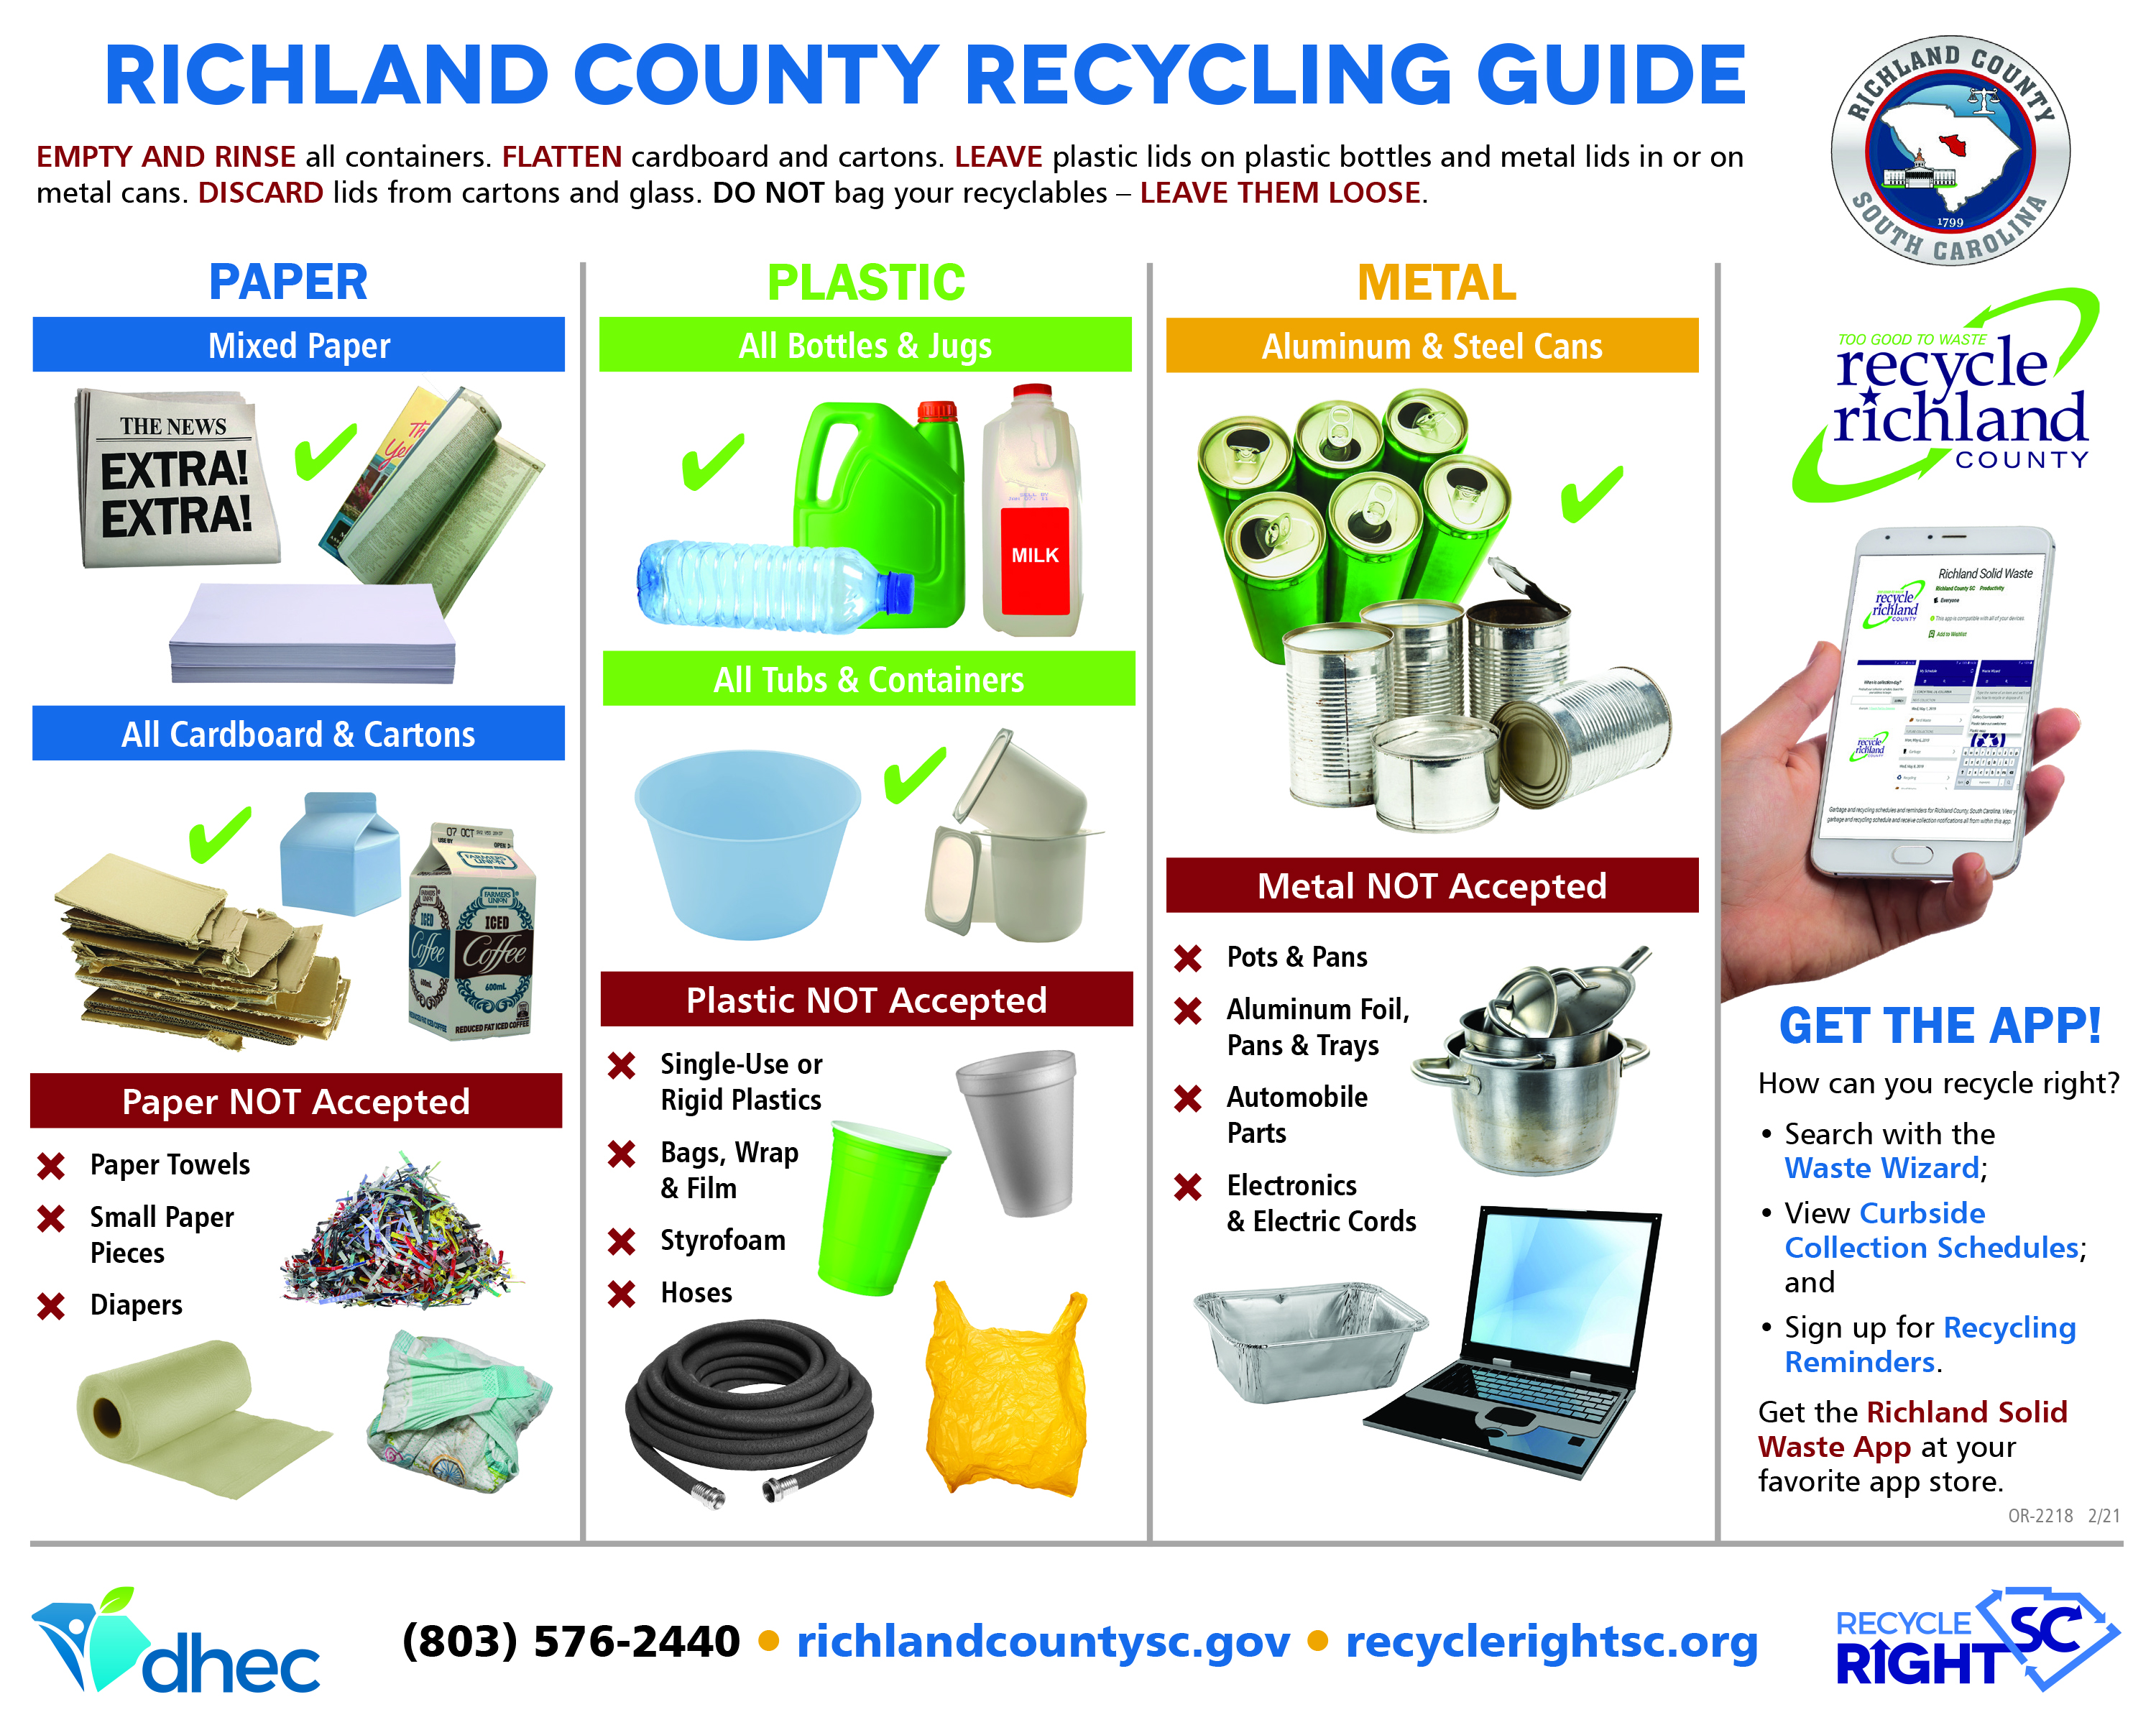 RichCo Recycle Right